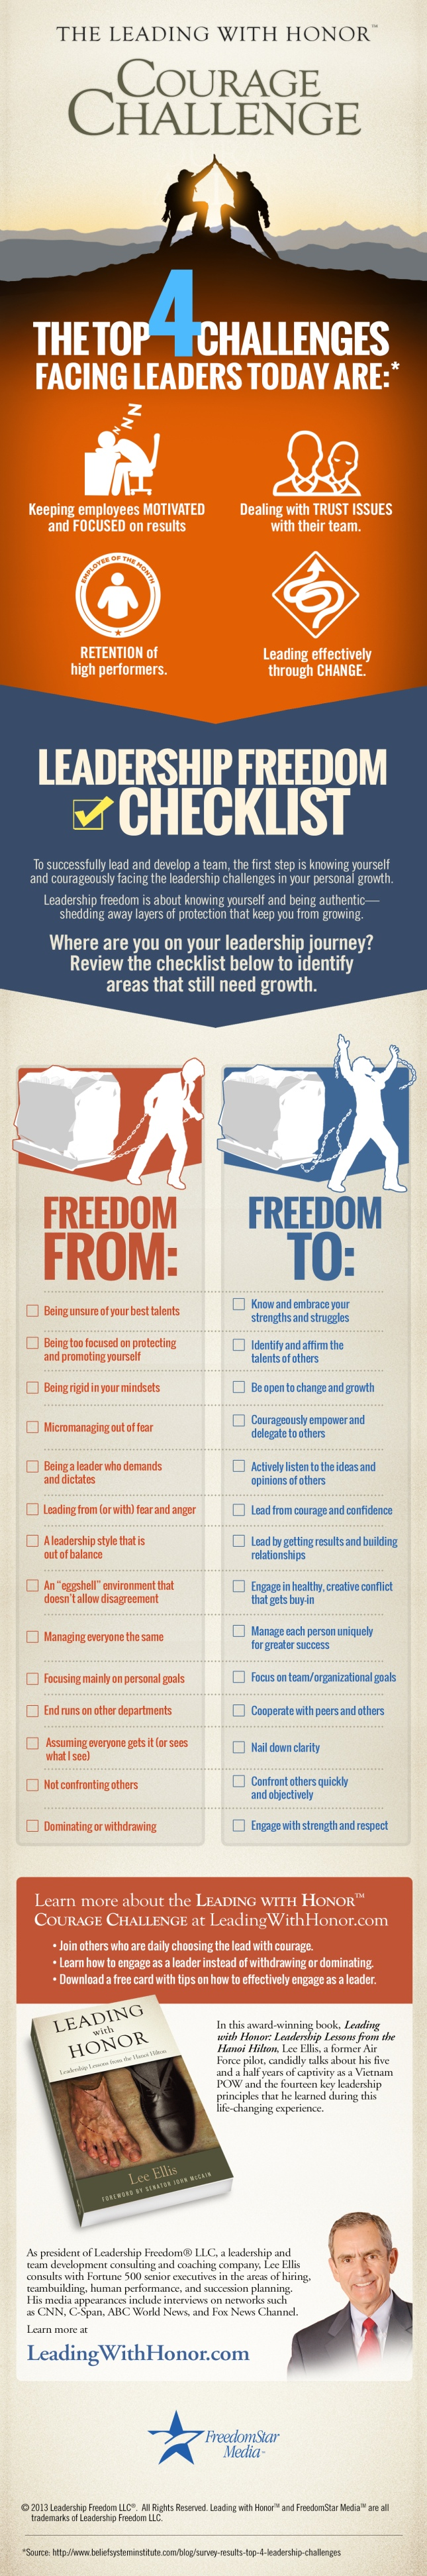 Leadership Freedom Checklist